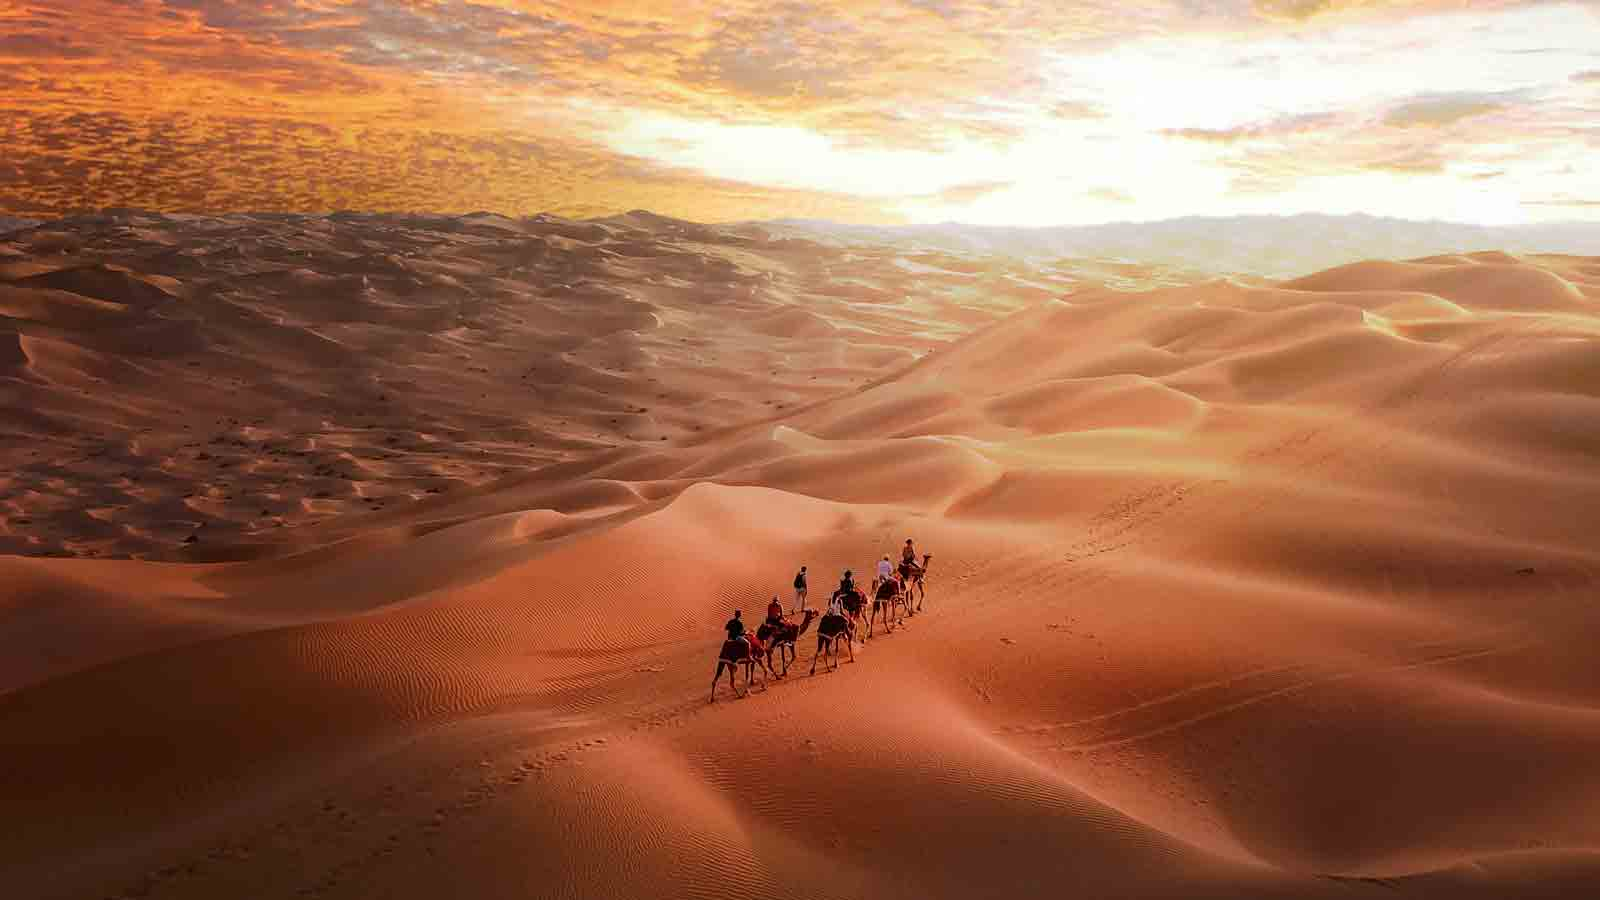 Trekking the sand dunes with camels